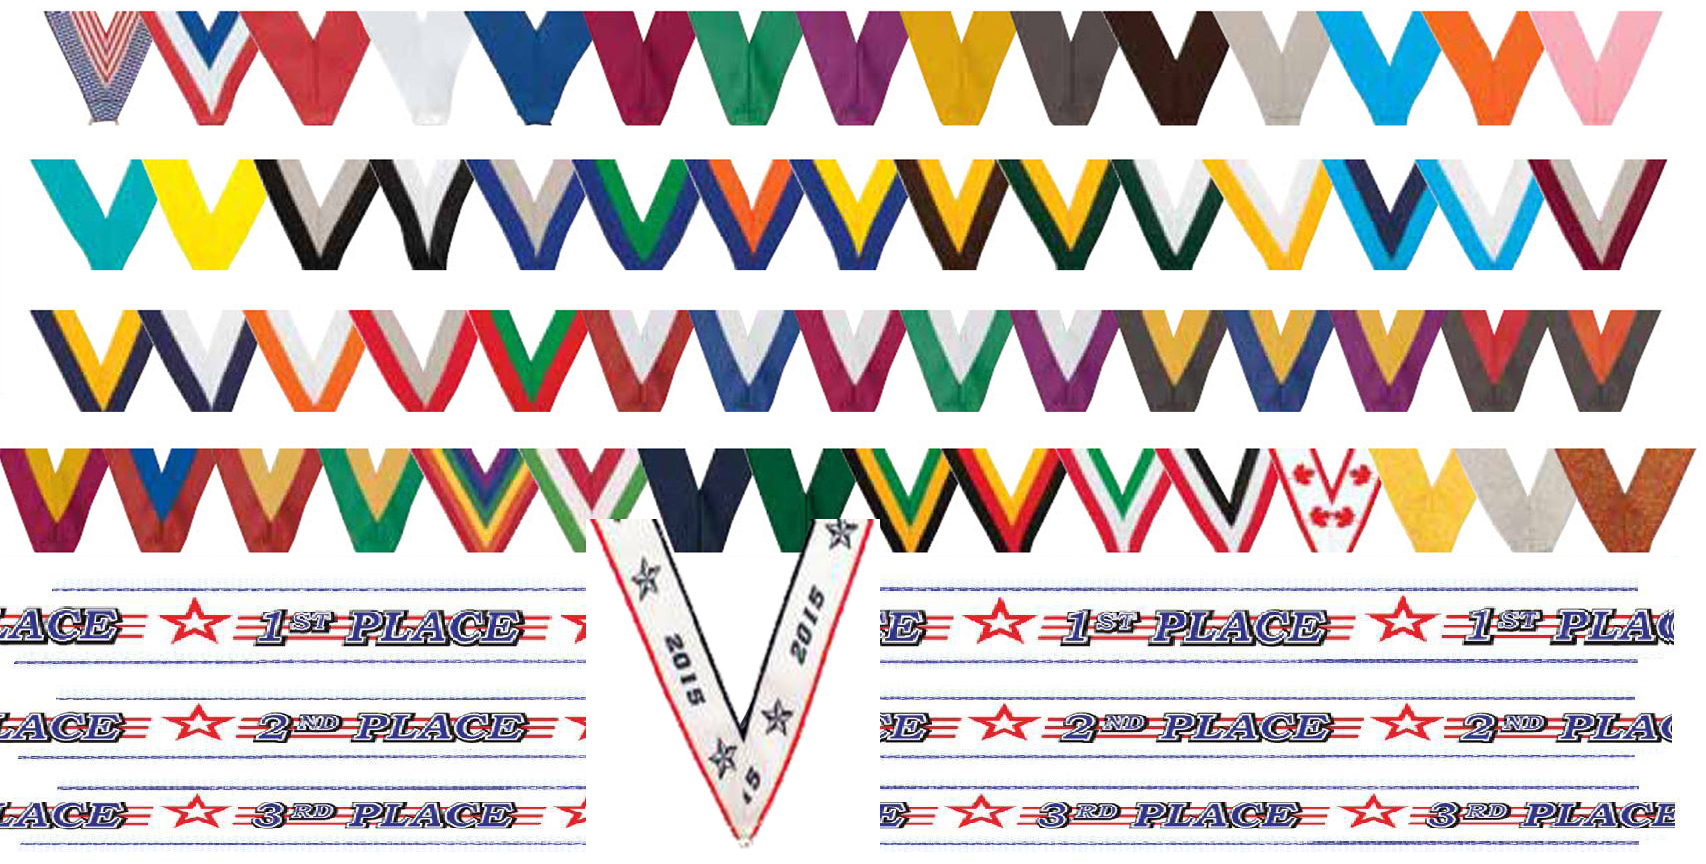 Gem medals red white blue stones express medals see std ribbon chart nvjuhfo Choice Image